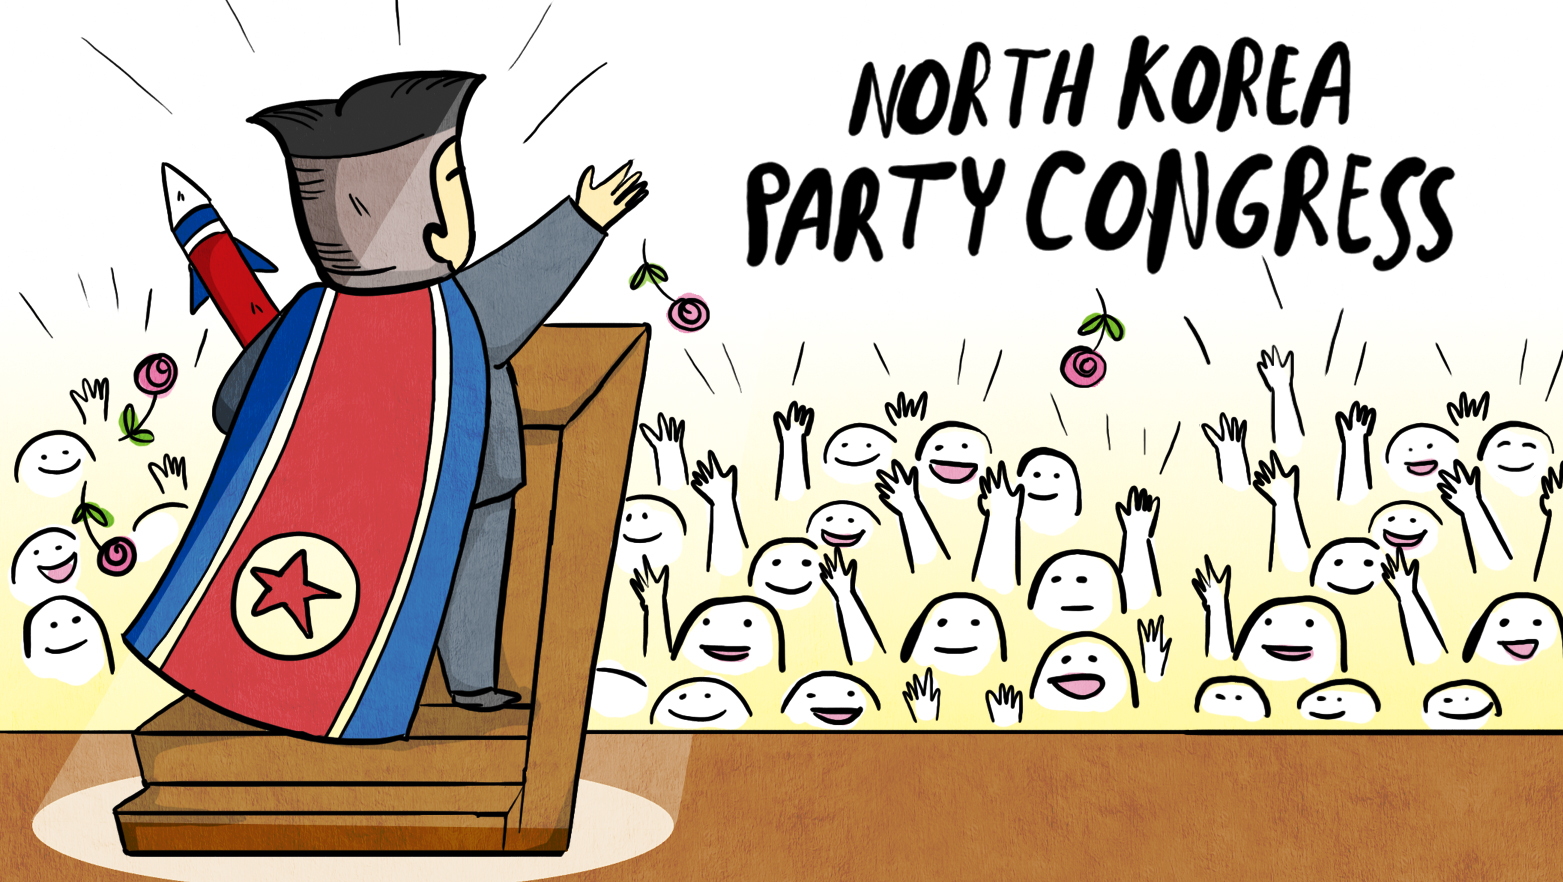 North Korea holds party congress